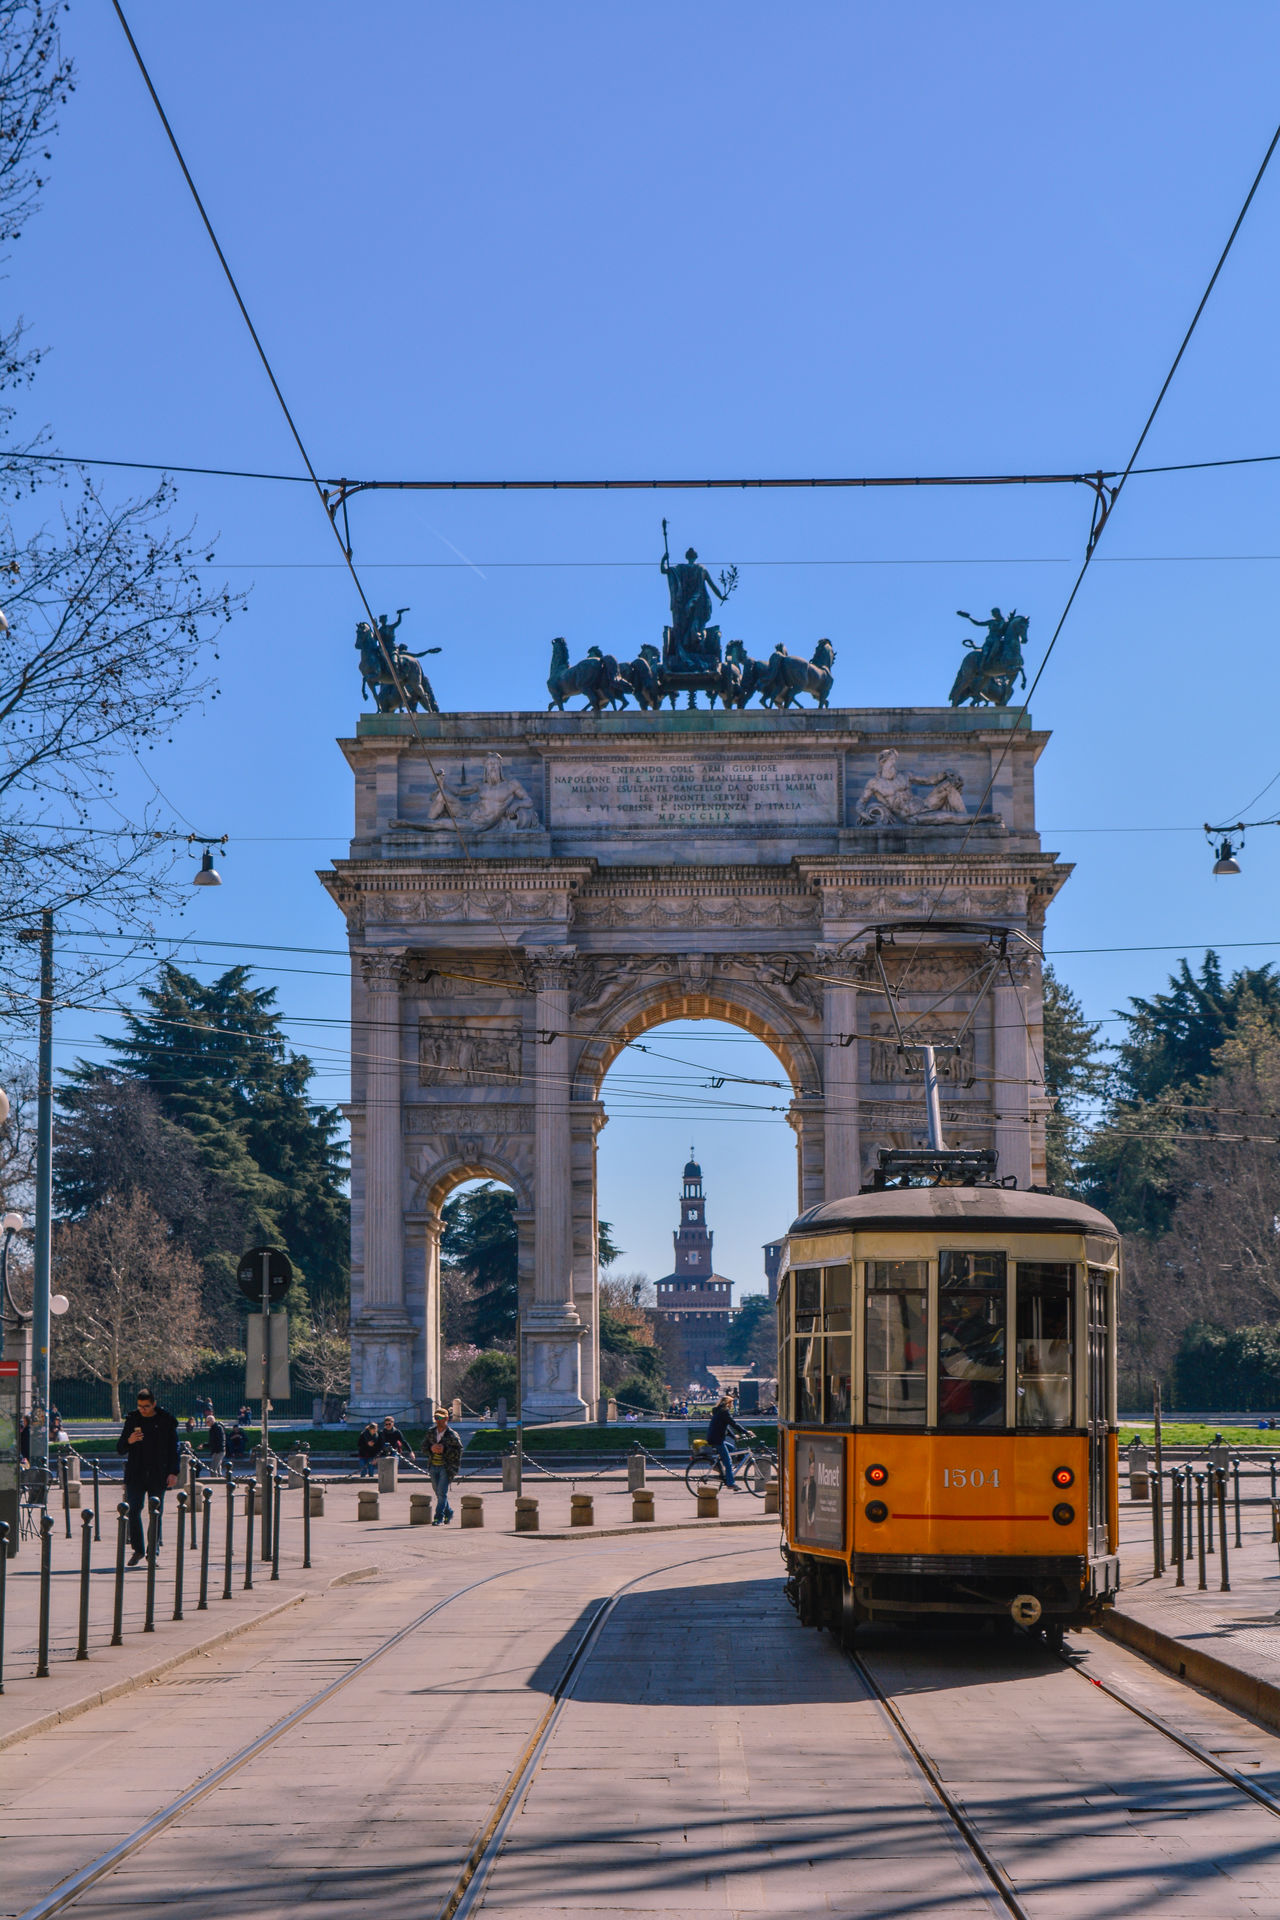 Tram City Architecture City Street Outdoors Urban Road Cityscape City Gate No People Day Arcodellapace Milano Flowers Nature Spring Springtime Milan Growth Sky Beauty In Nature Hello World Tranquility Amazing View Clouds Sunset